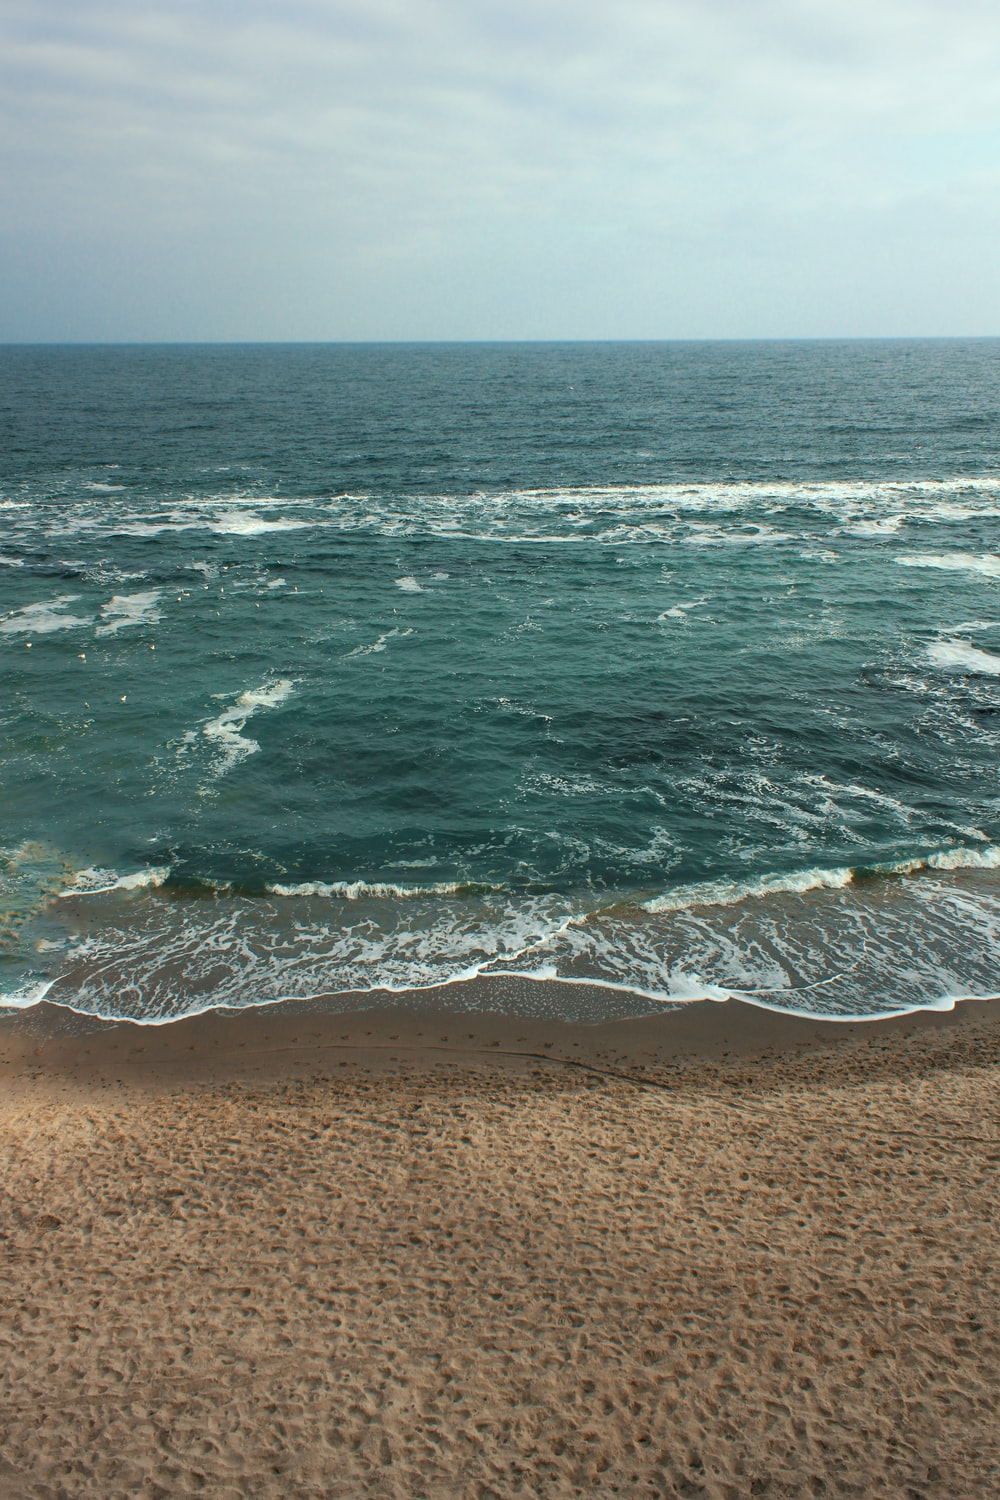 sea waves crashing on shore during daytime